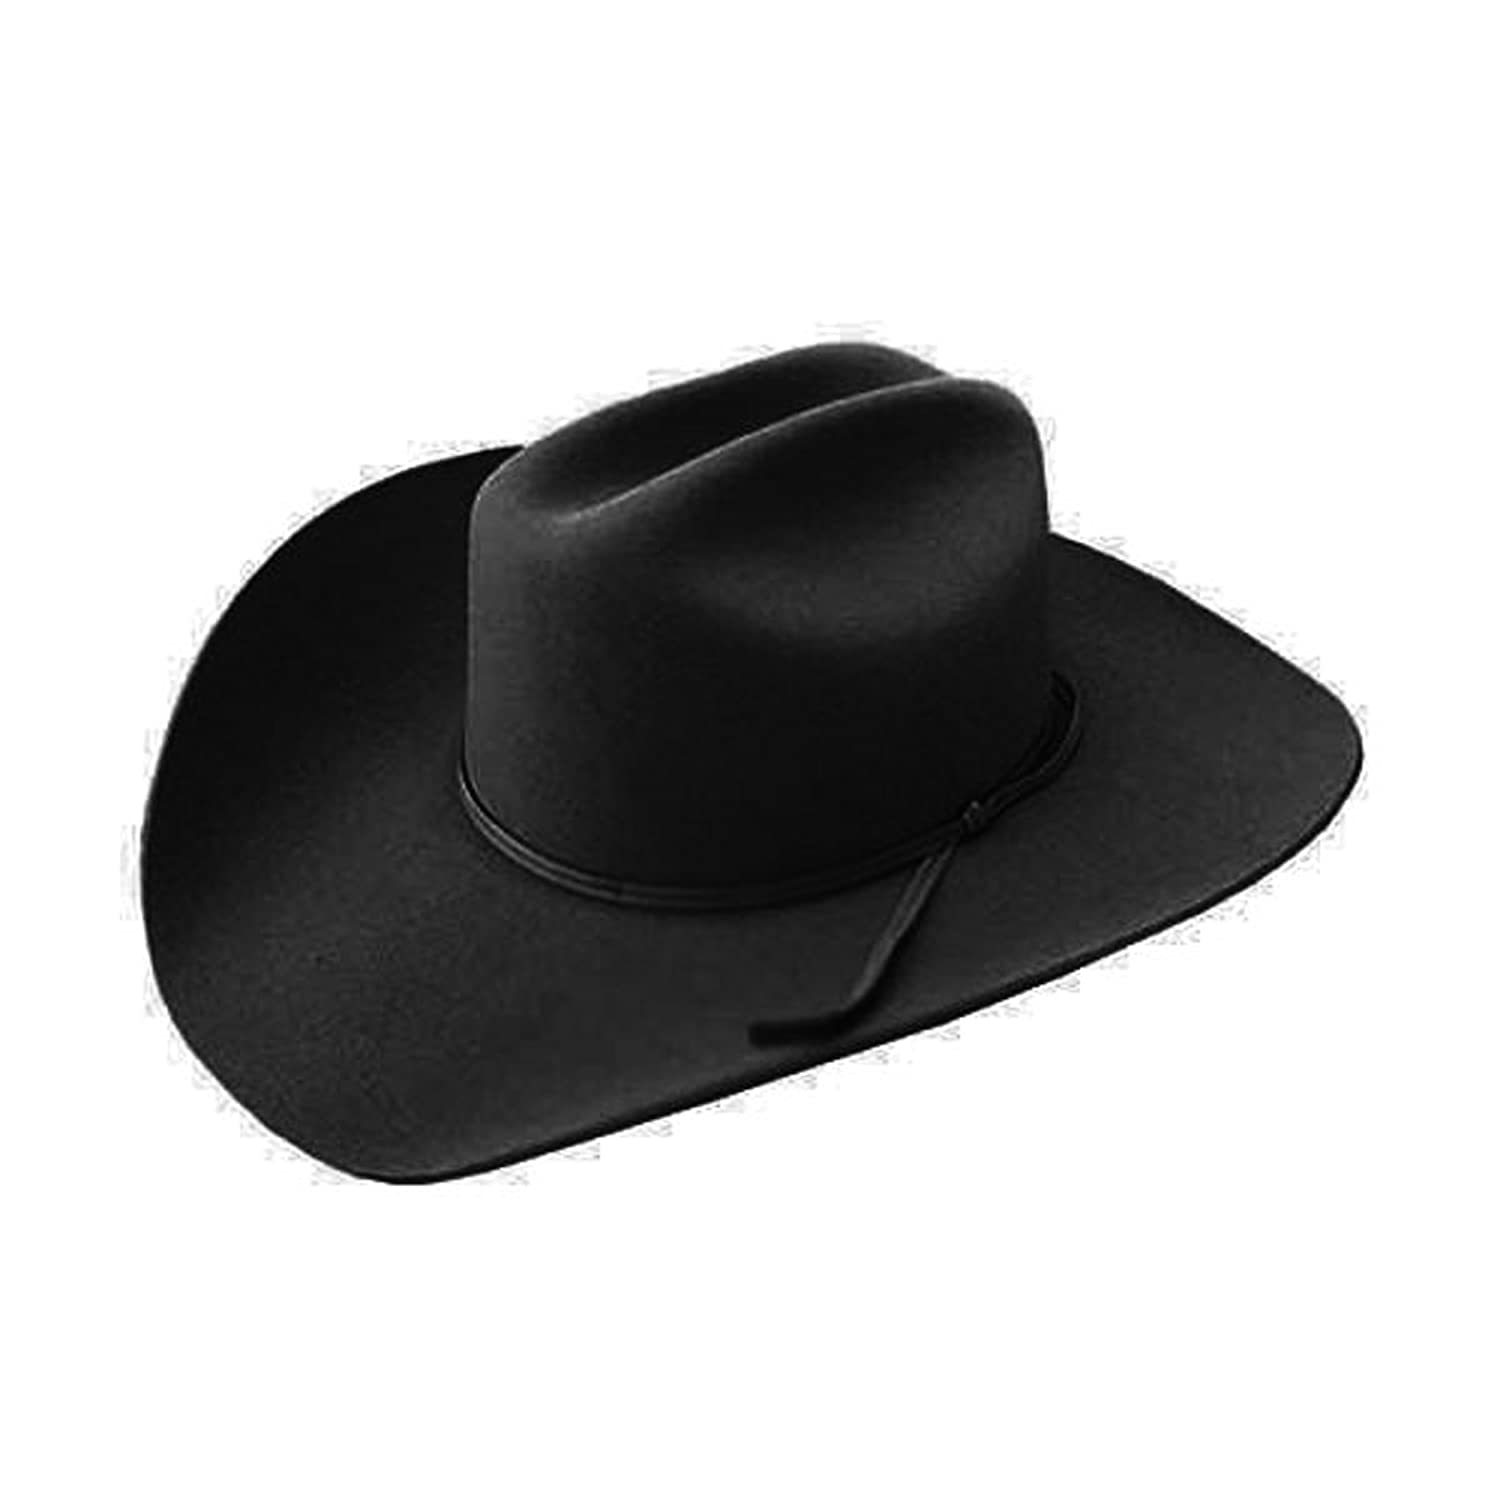 dbf2a92b8f3a22 Stetson Cattleman Western Hat at Amazon Men's Clothing store: